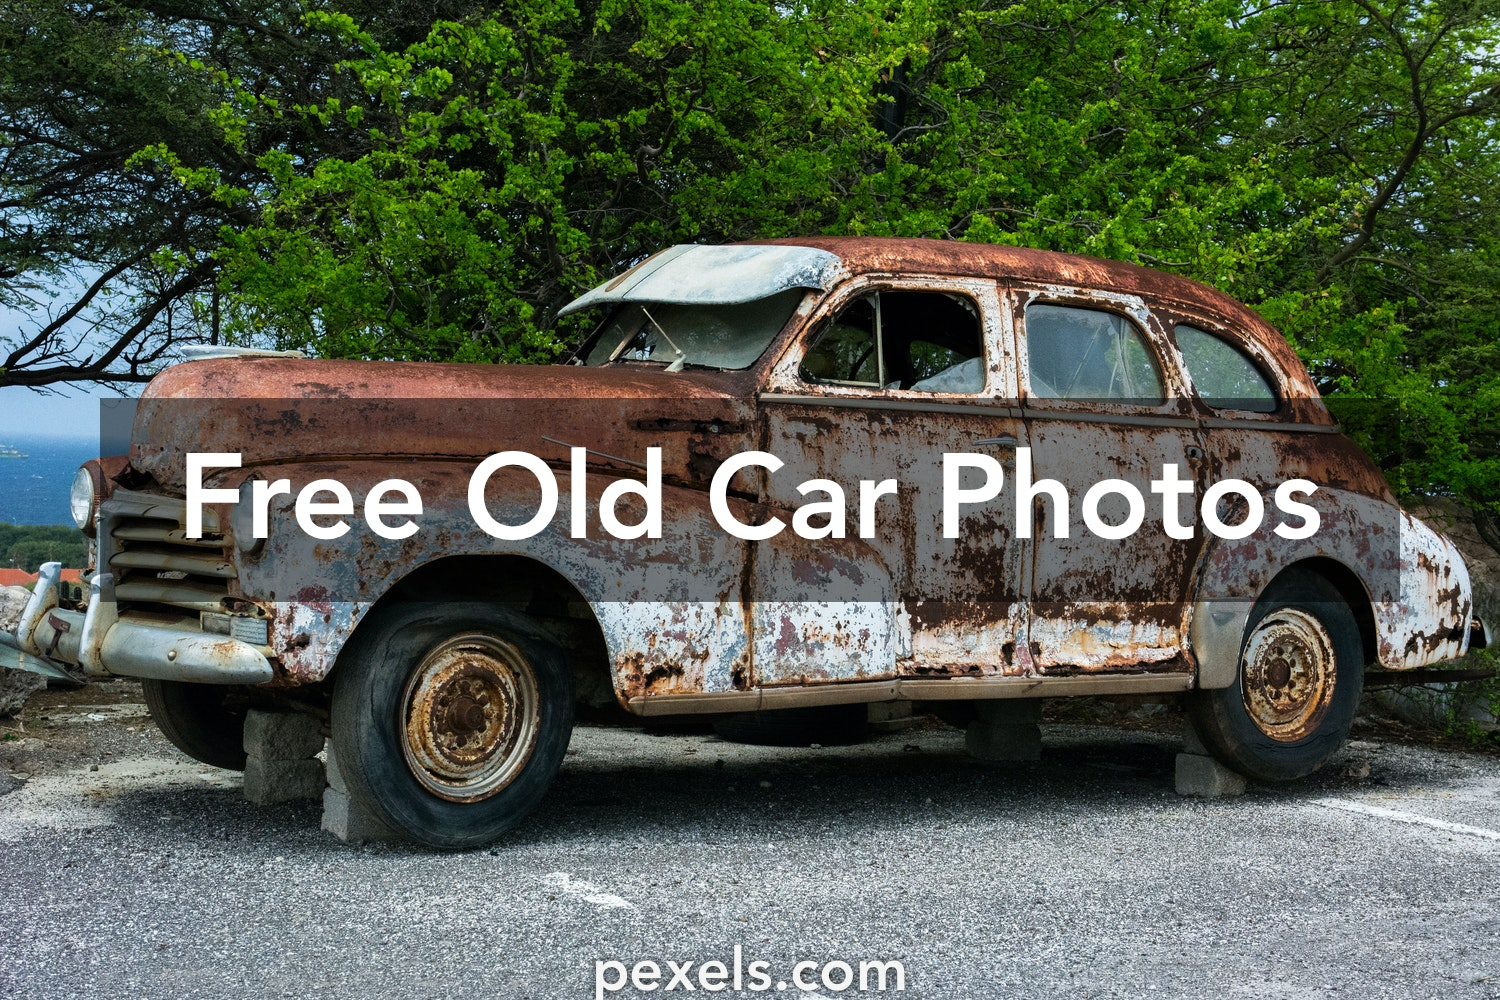 Engaging Old Car Photos Pexels Free Stock Photos - Pictures of old cars